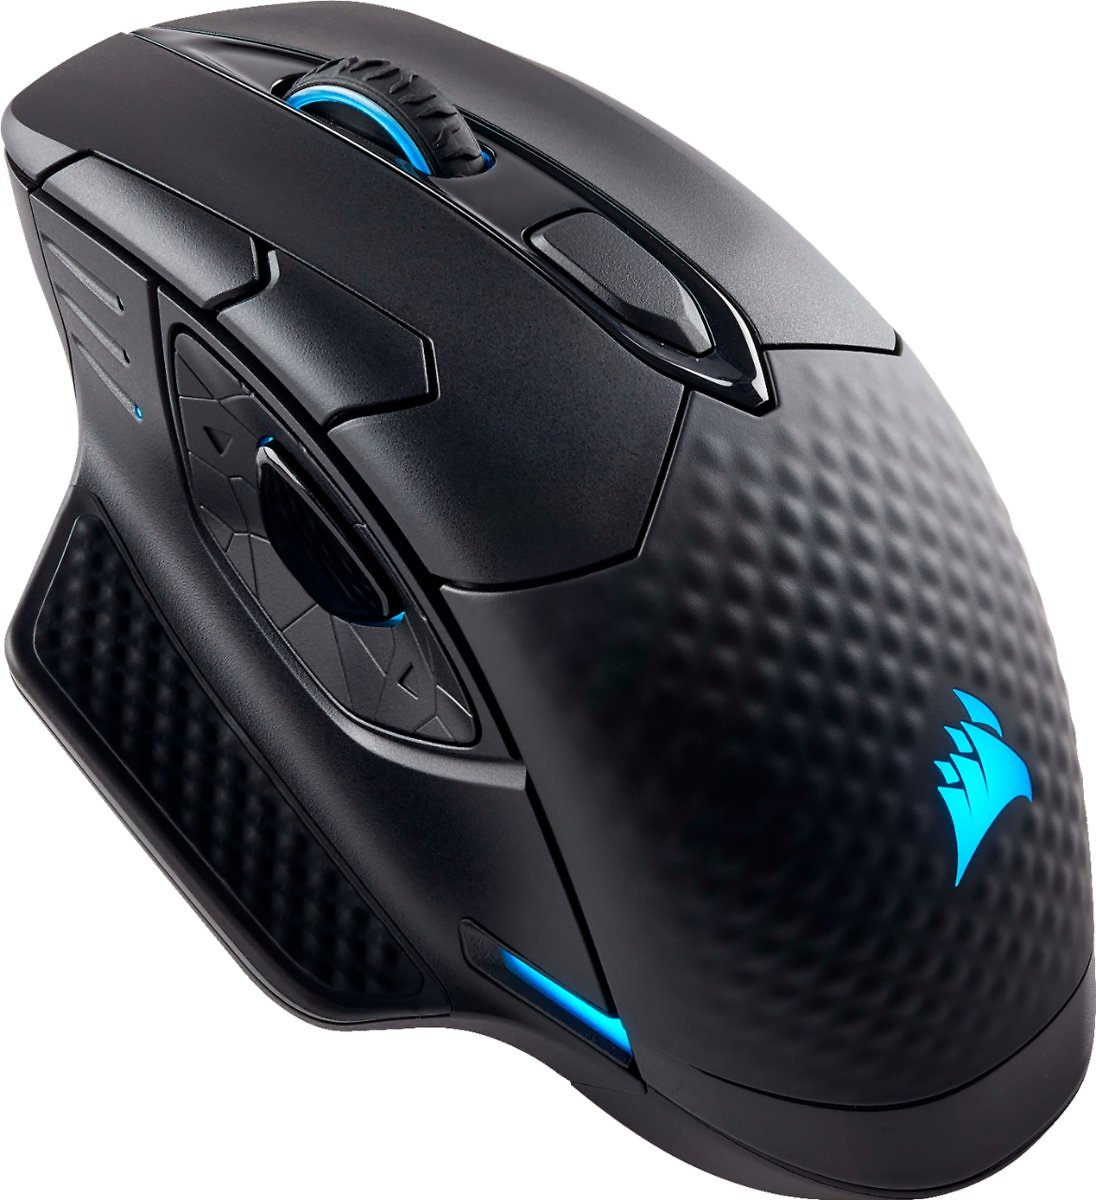 CORSAIR DARK CORE SE Wireless Gaming 9 Button Optical Mouse with RGB Lighting and Qi Wireless Charging Black CH-9315311-NA